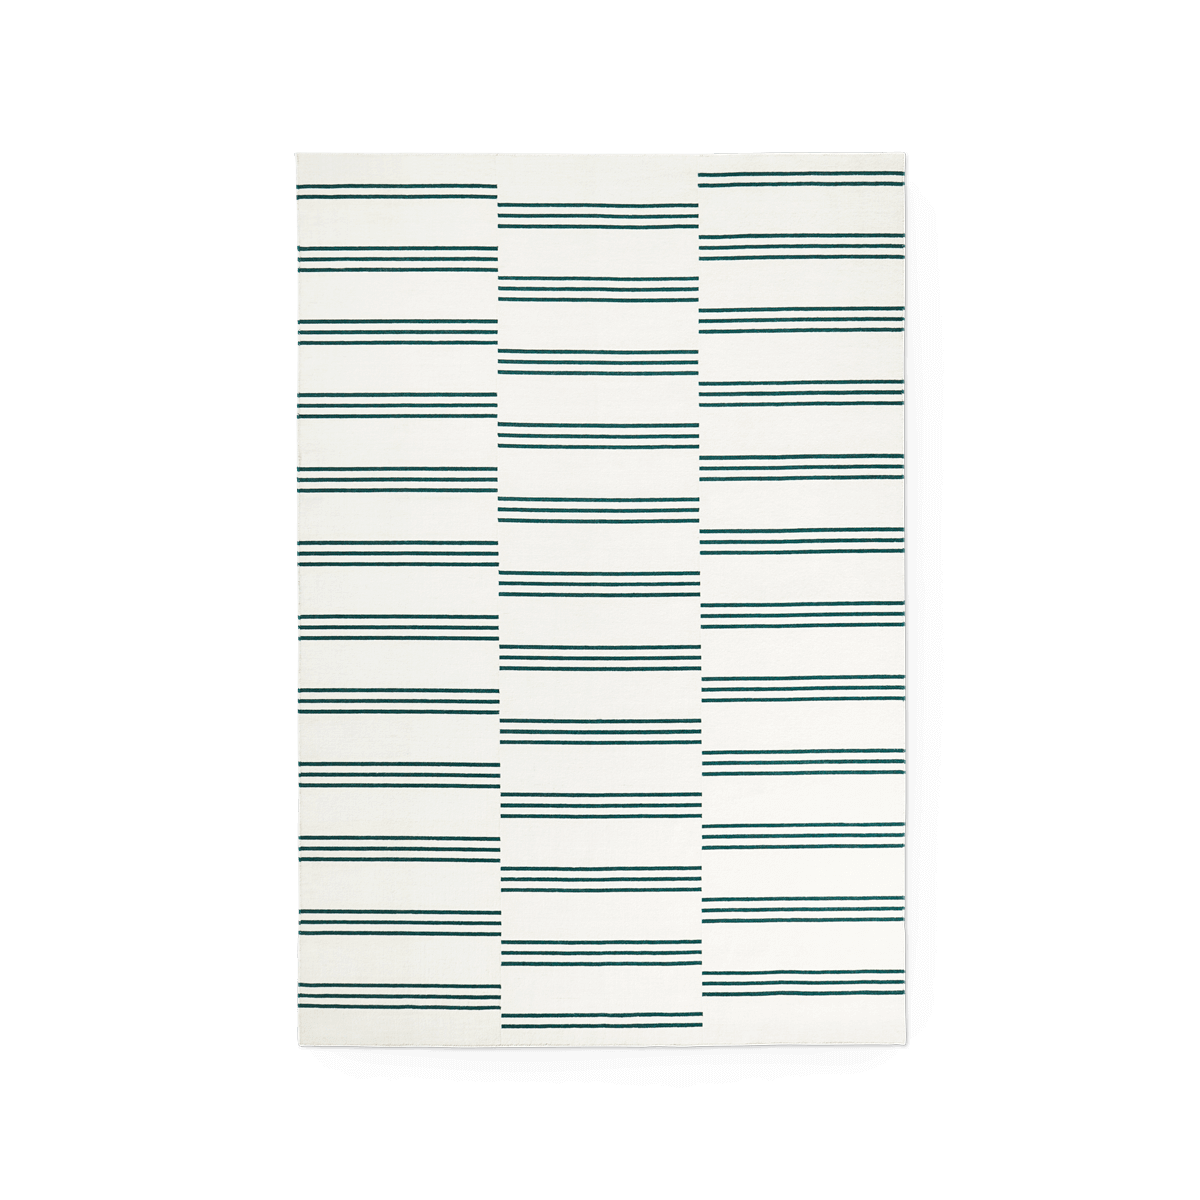 Product image of the flatweave rug Stripes in the color Green. The rug itself is a cream color with green stripes creating a pattern.